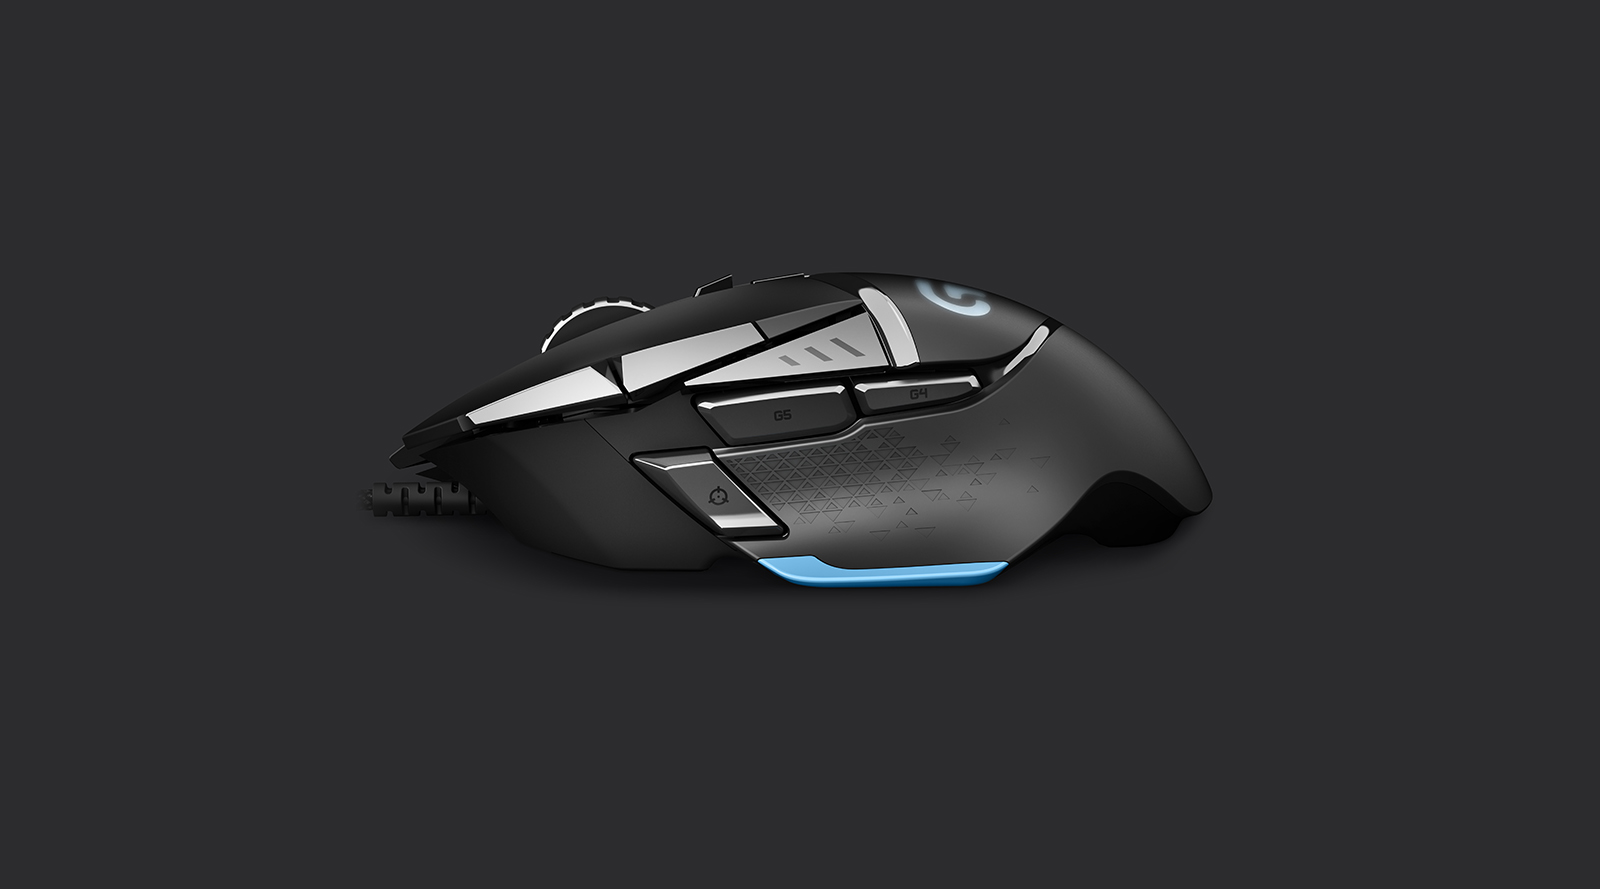 3D Product Modeling-Logitech Proteus Gaming Mouse- Produced by Digital Imaging Group LLC